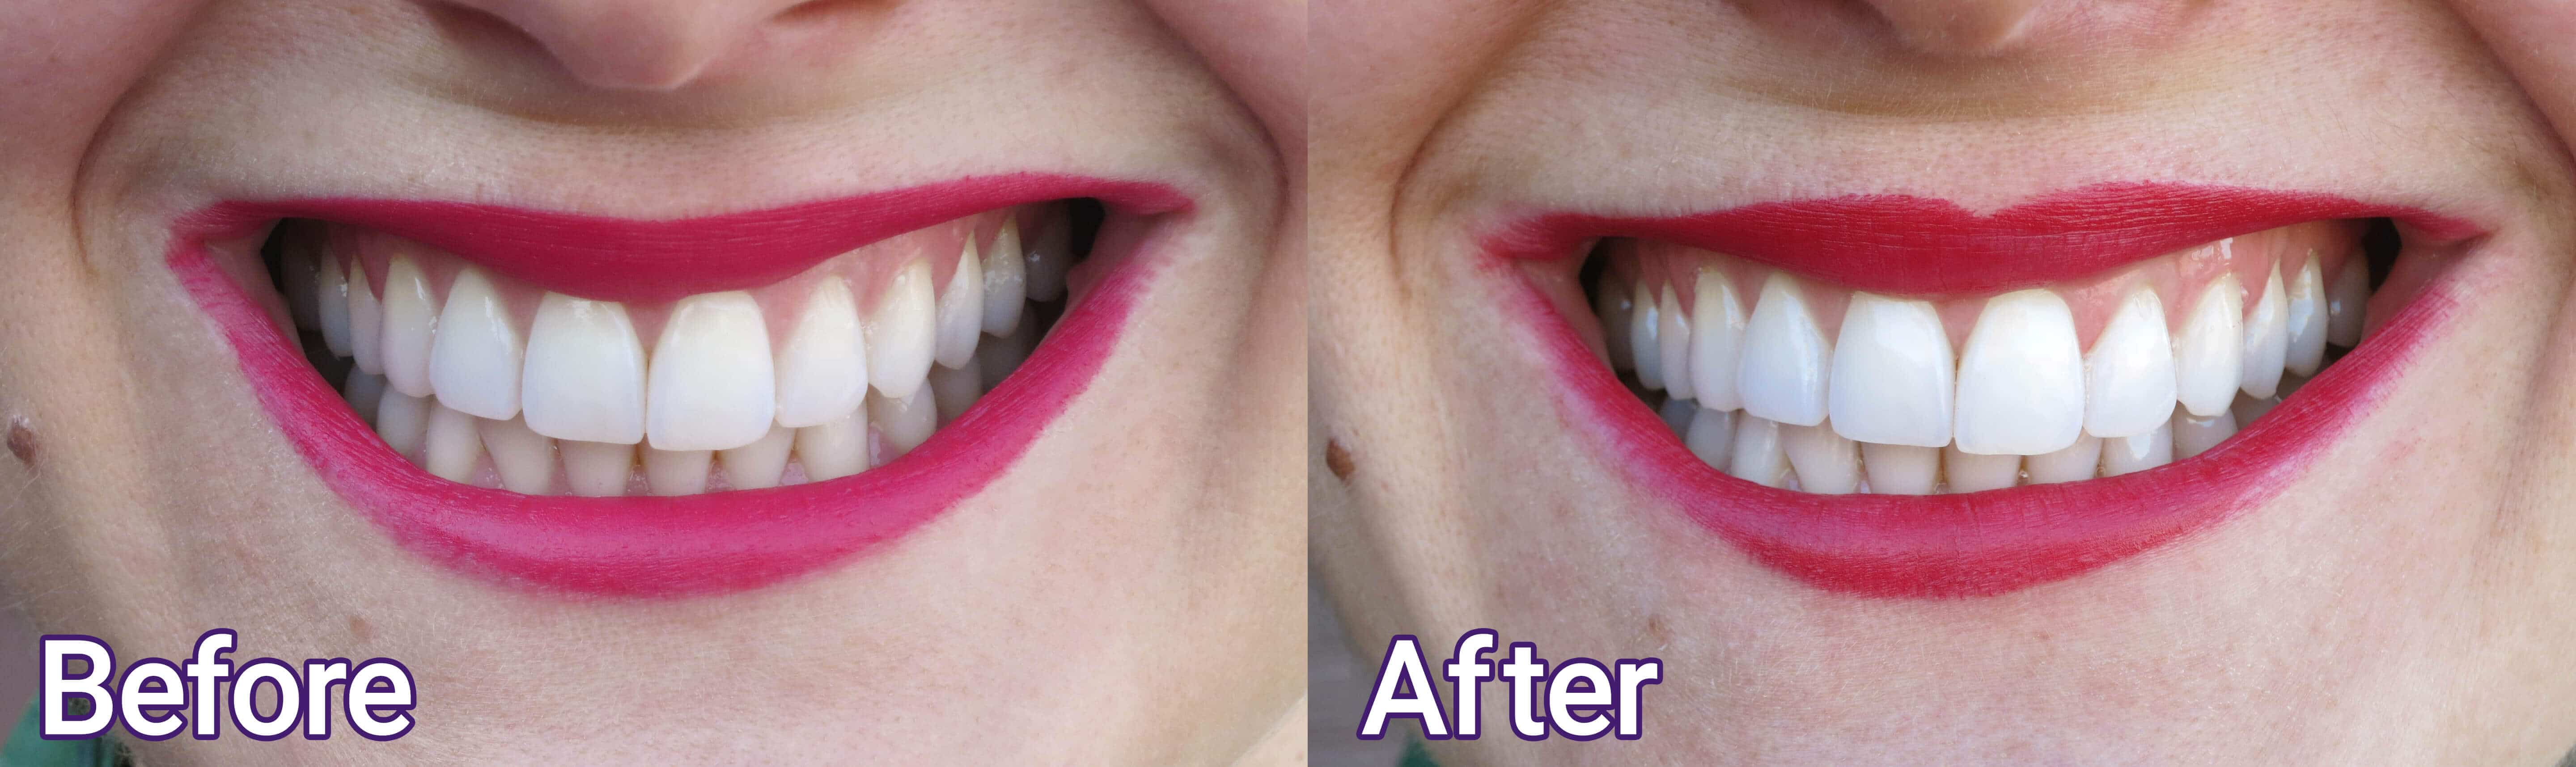 Smile Brilliant Teeth Whitening Before and After by Modnitsa Styling